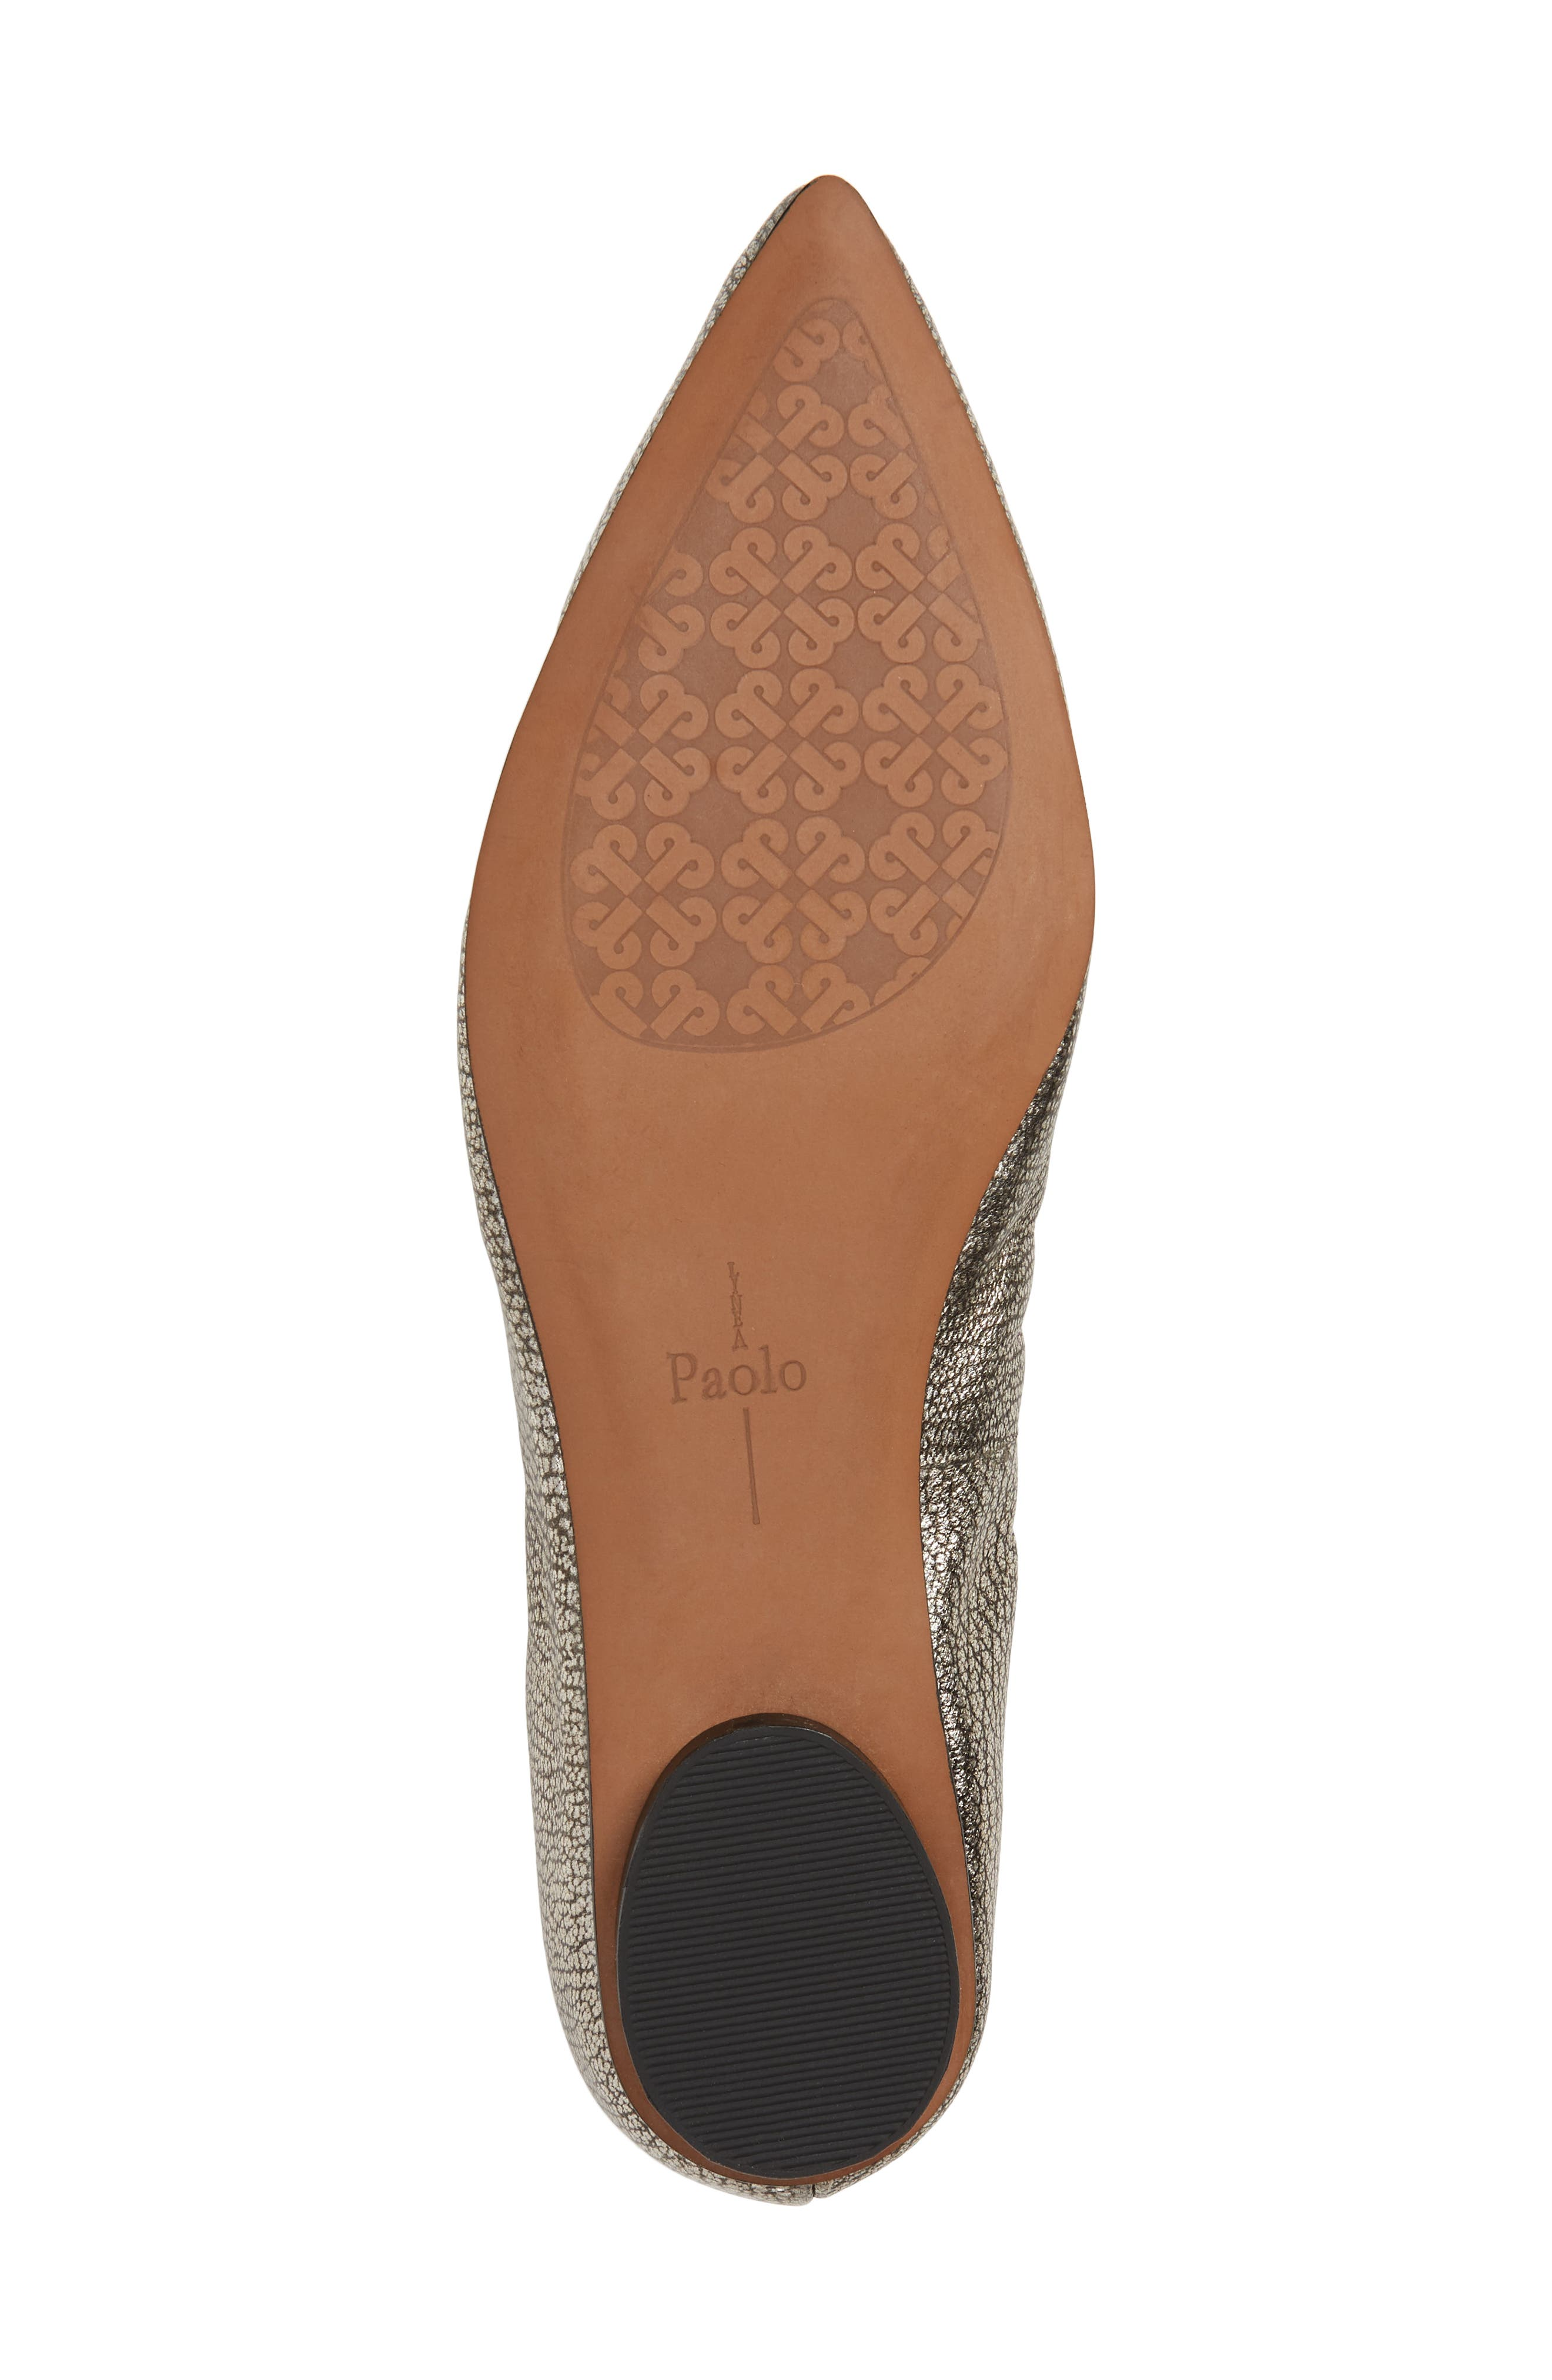 LINEA PAOLO, Nico Pointy Toe Flat, Alternate thumbnail 6, color, ANTHRACITE LEATHER